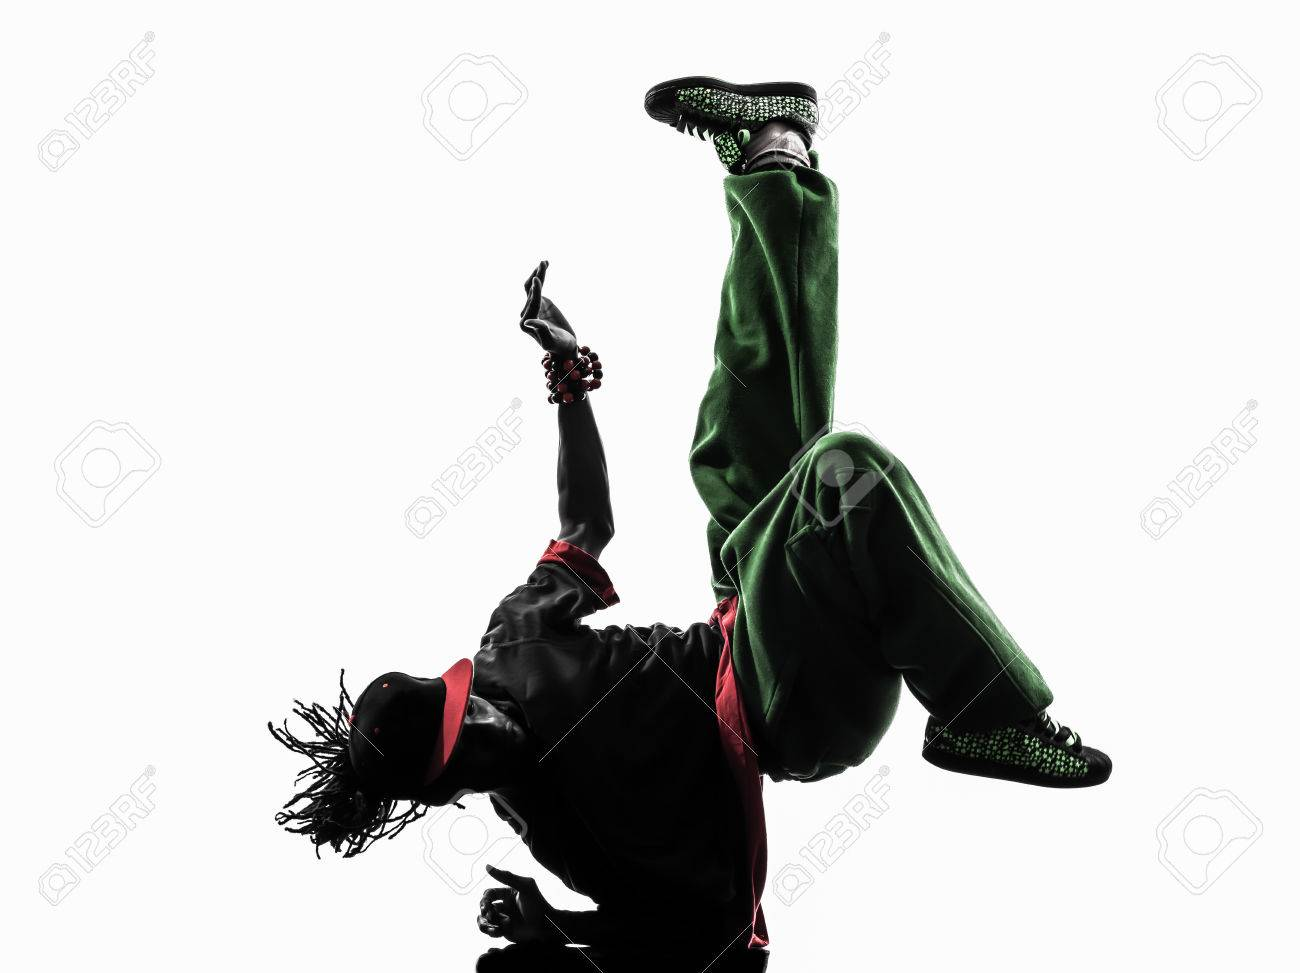 1300x973 One Hip Hop Acrobatic Break Dancer Break Dancing Young Man